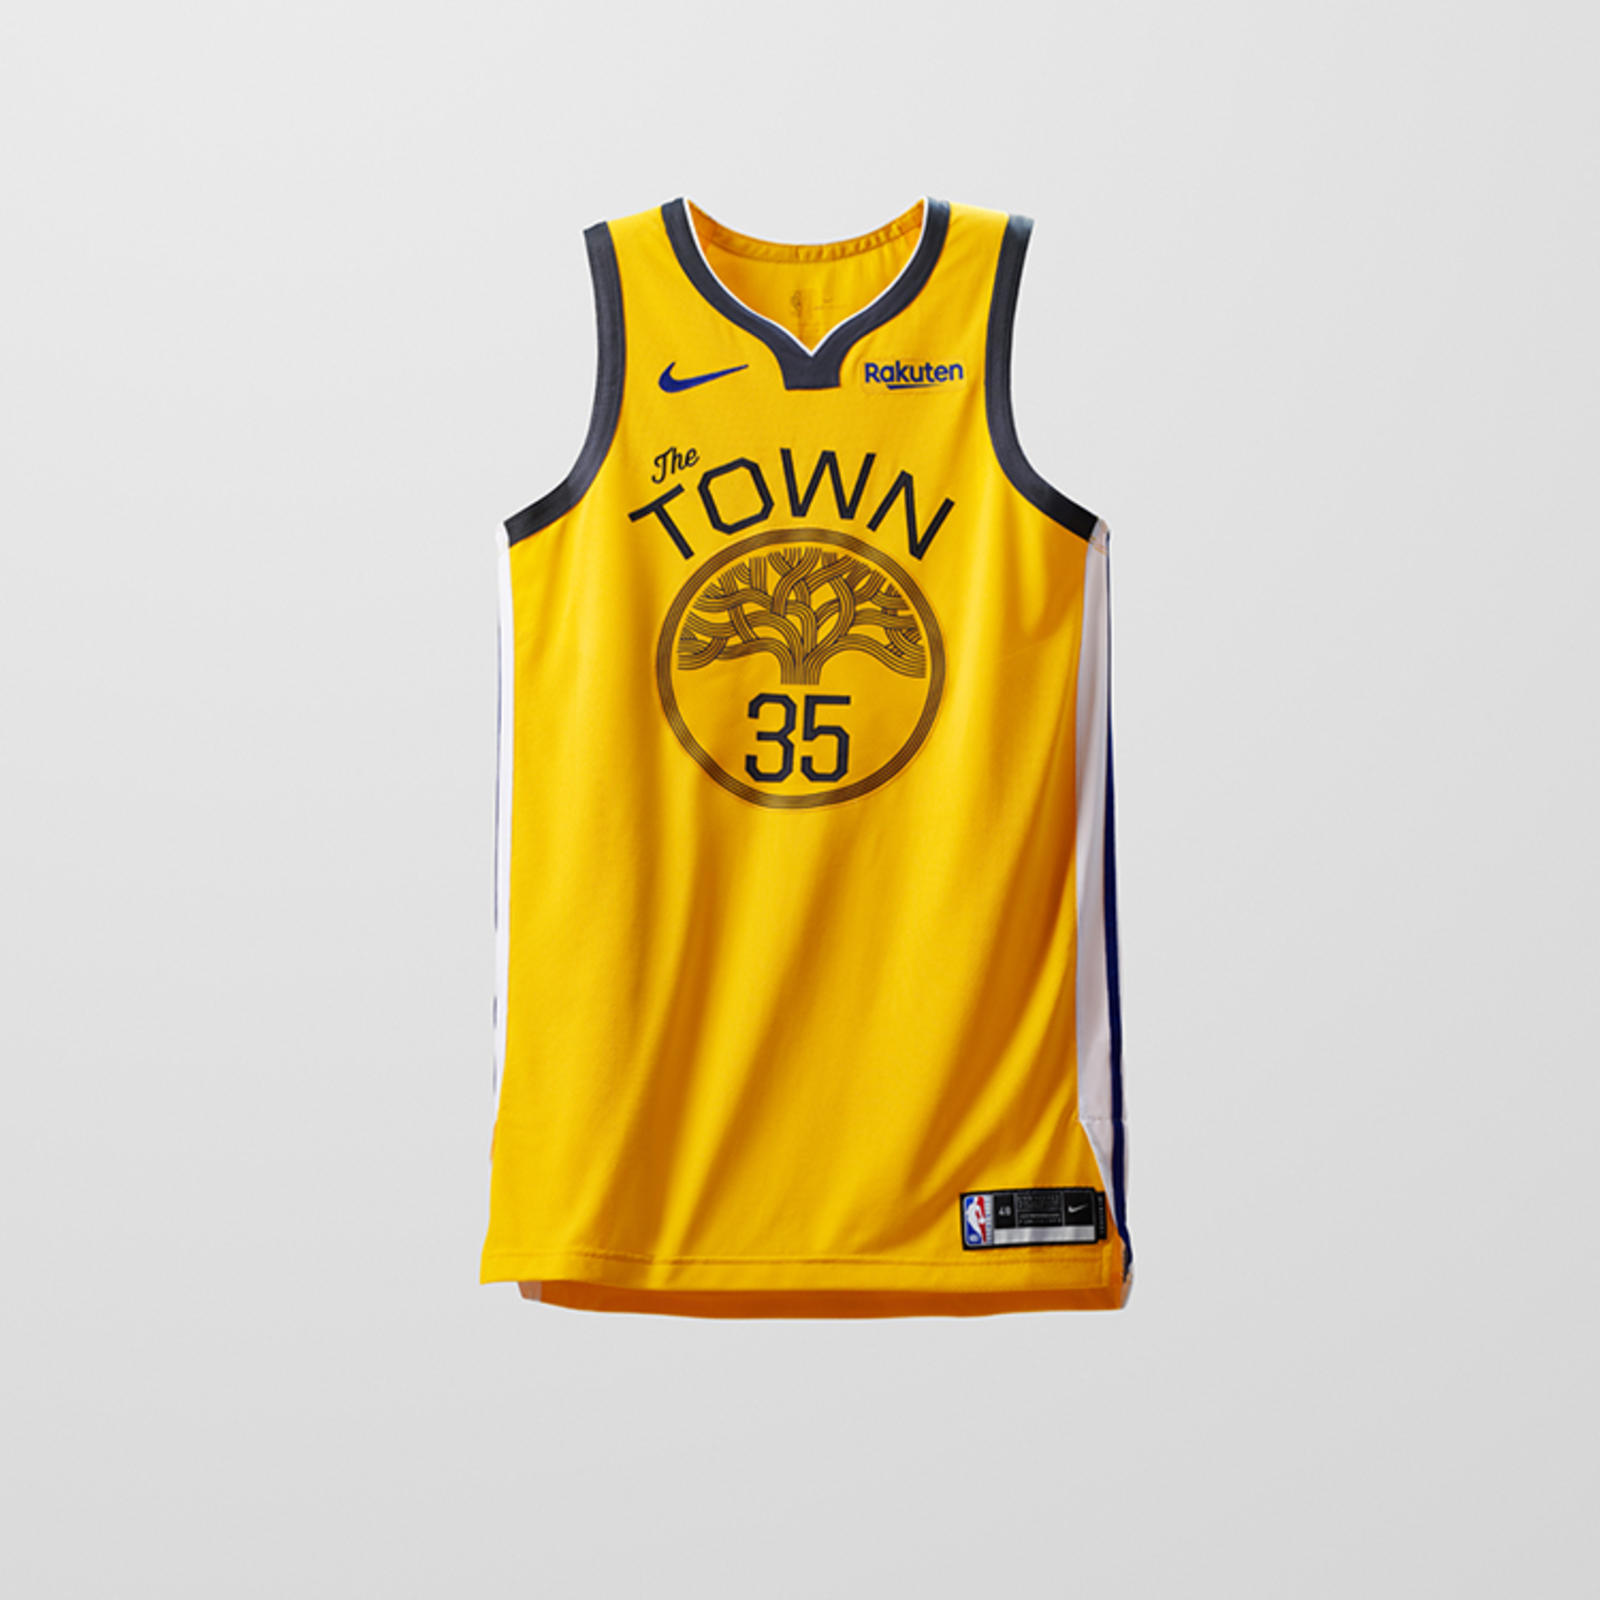 Introducing the Nike x NBA EARNED Edition Uniforms 13 2a3ec0a4c